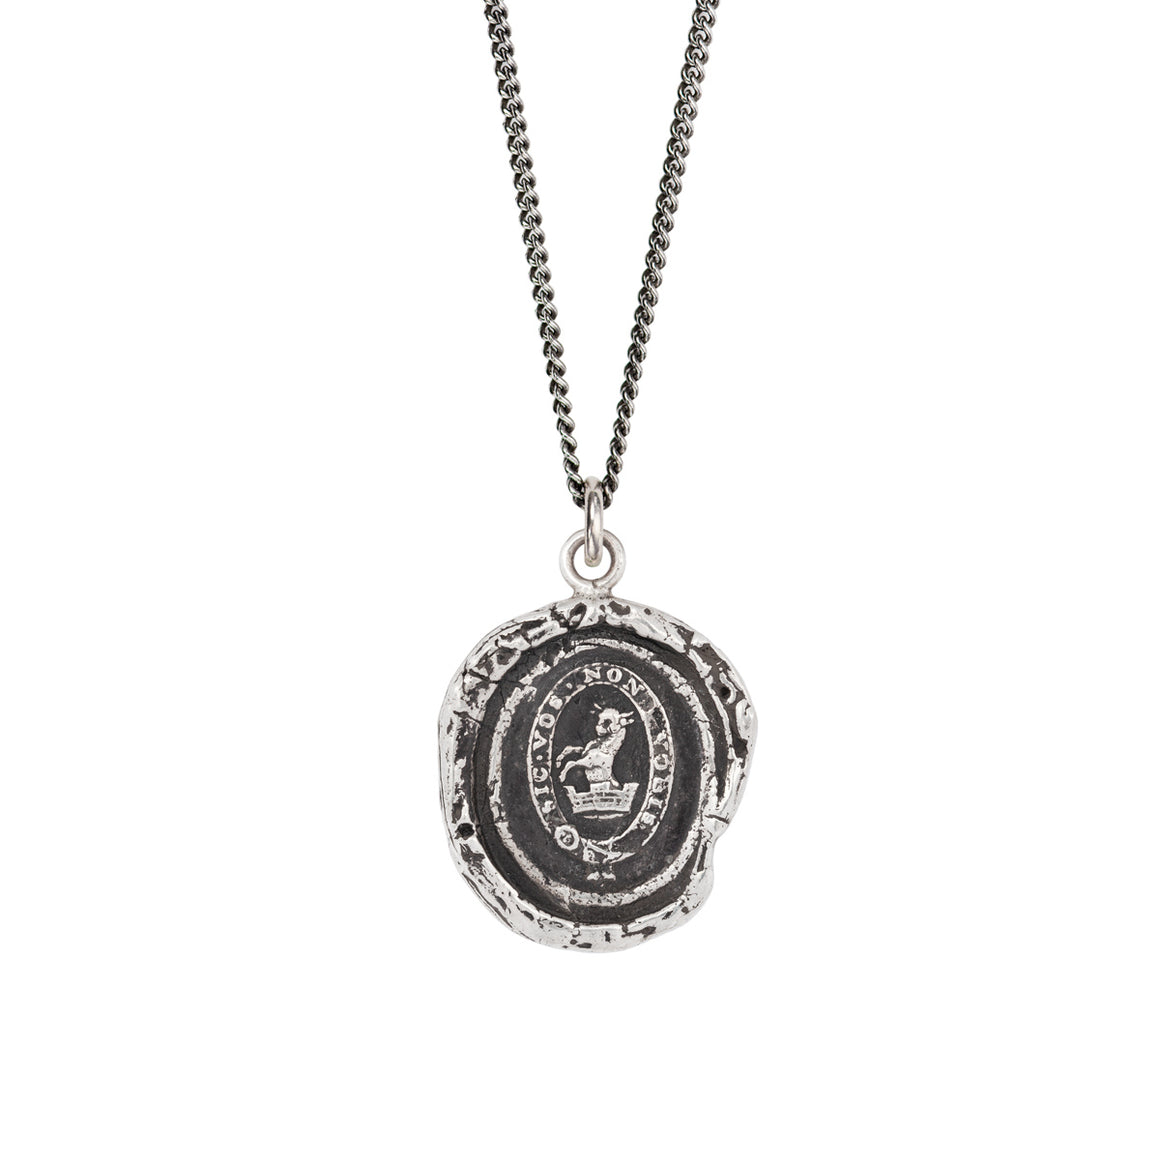 DEVOTED FATHER PYRRHA TALISMAN NECKLACE